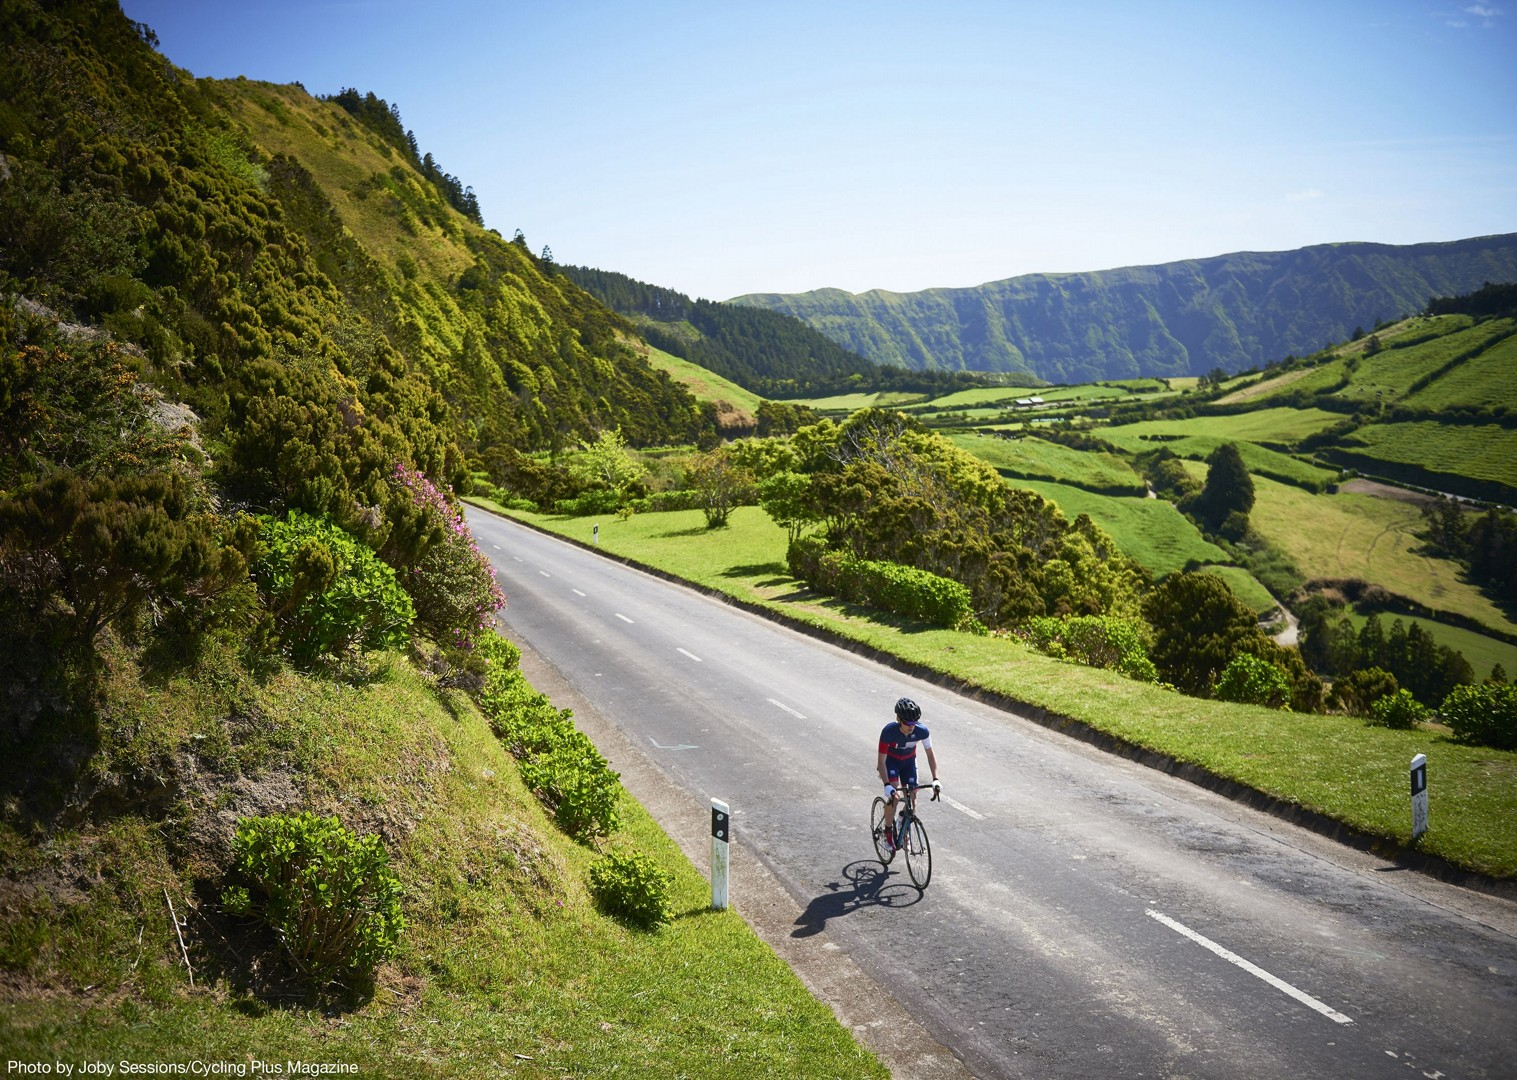 high-quality-luxurious-accommodation-road-cycling-holiday-the-azores.jpg - The Azores - Lost World of Sao Miguel - Guided Road Cycling Holiday - Road Cycling